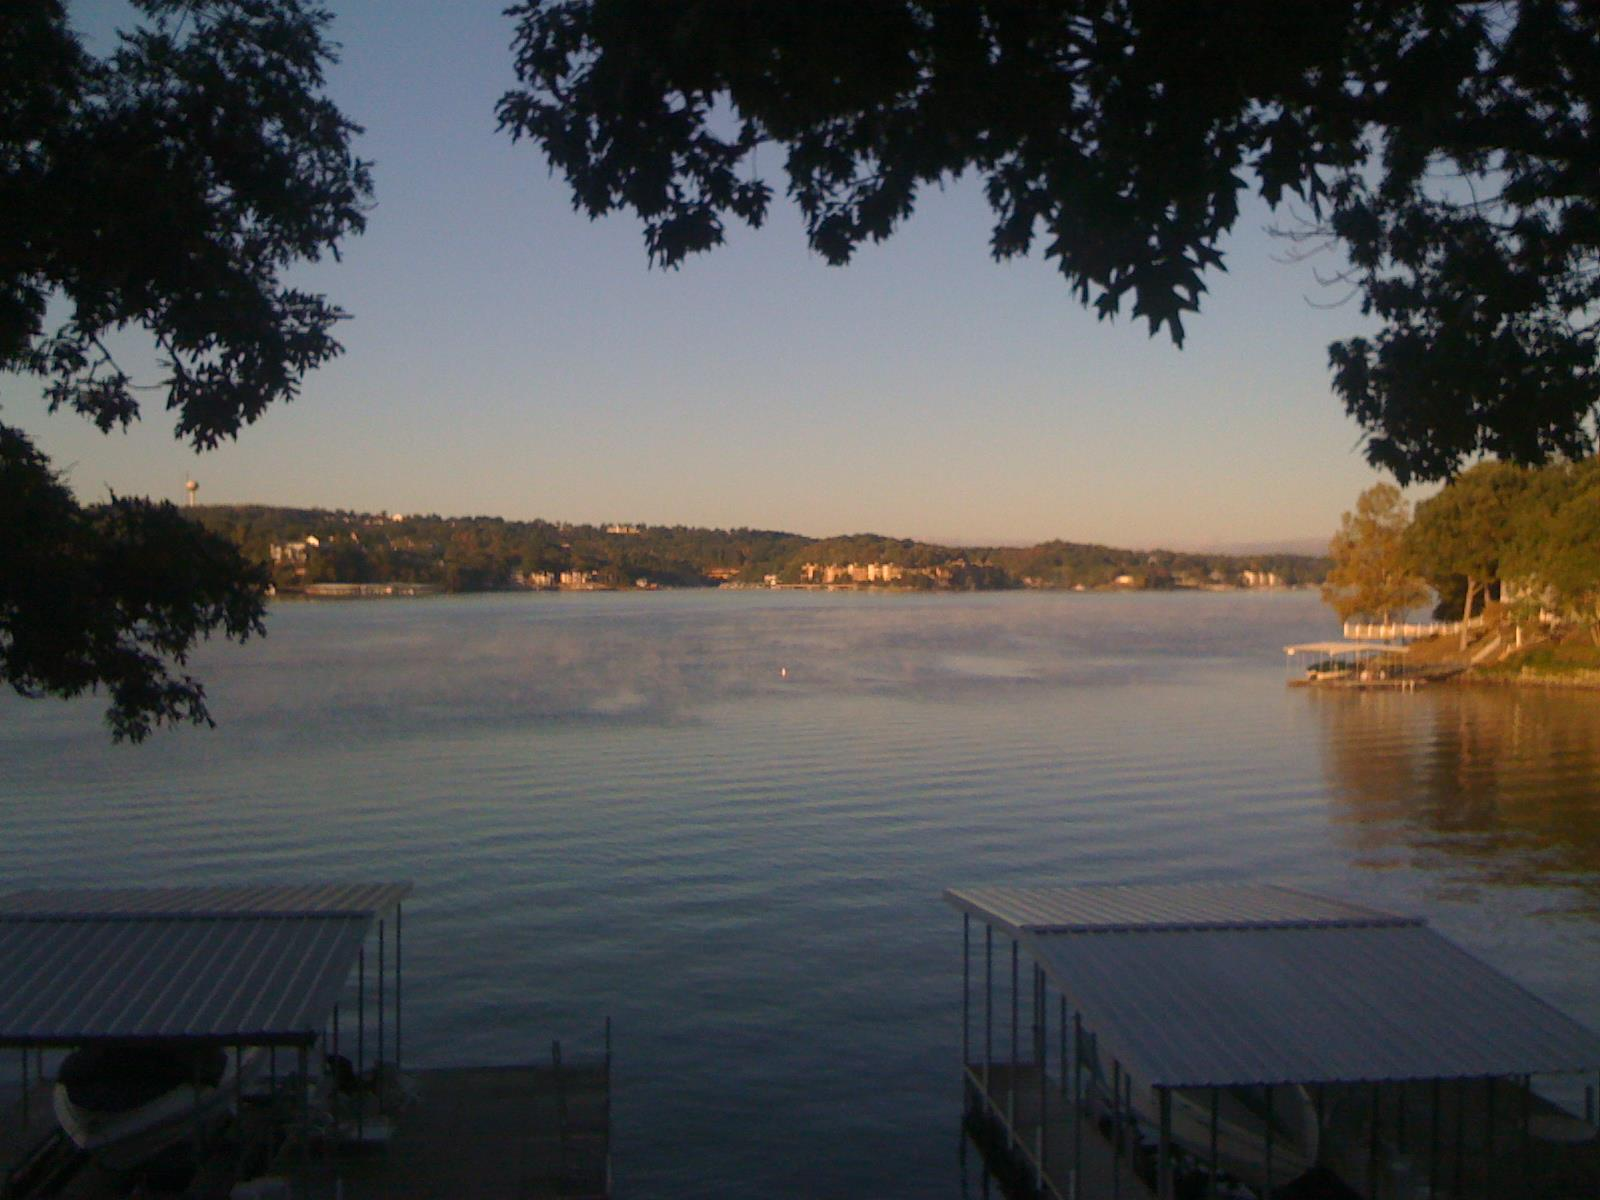 Taylor and wife, Kristen, enjoy sitting outside and watching the sunrise over the Lake of the Ozarks before they head back to Columbia Monday mornings.